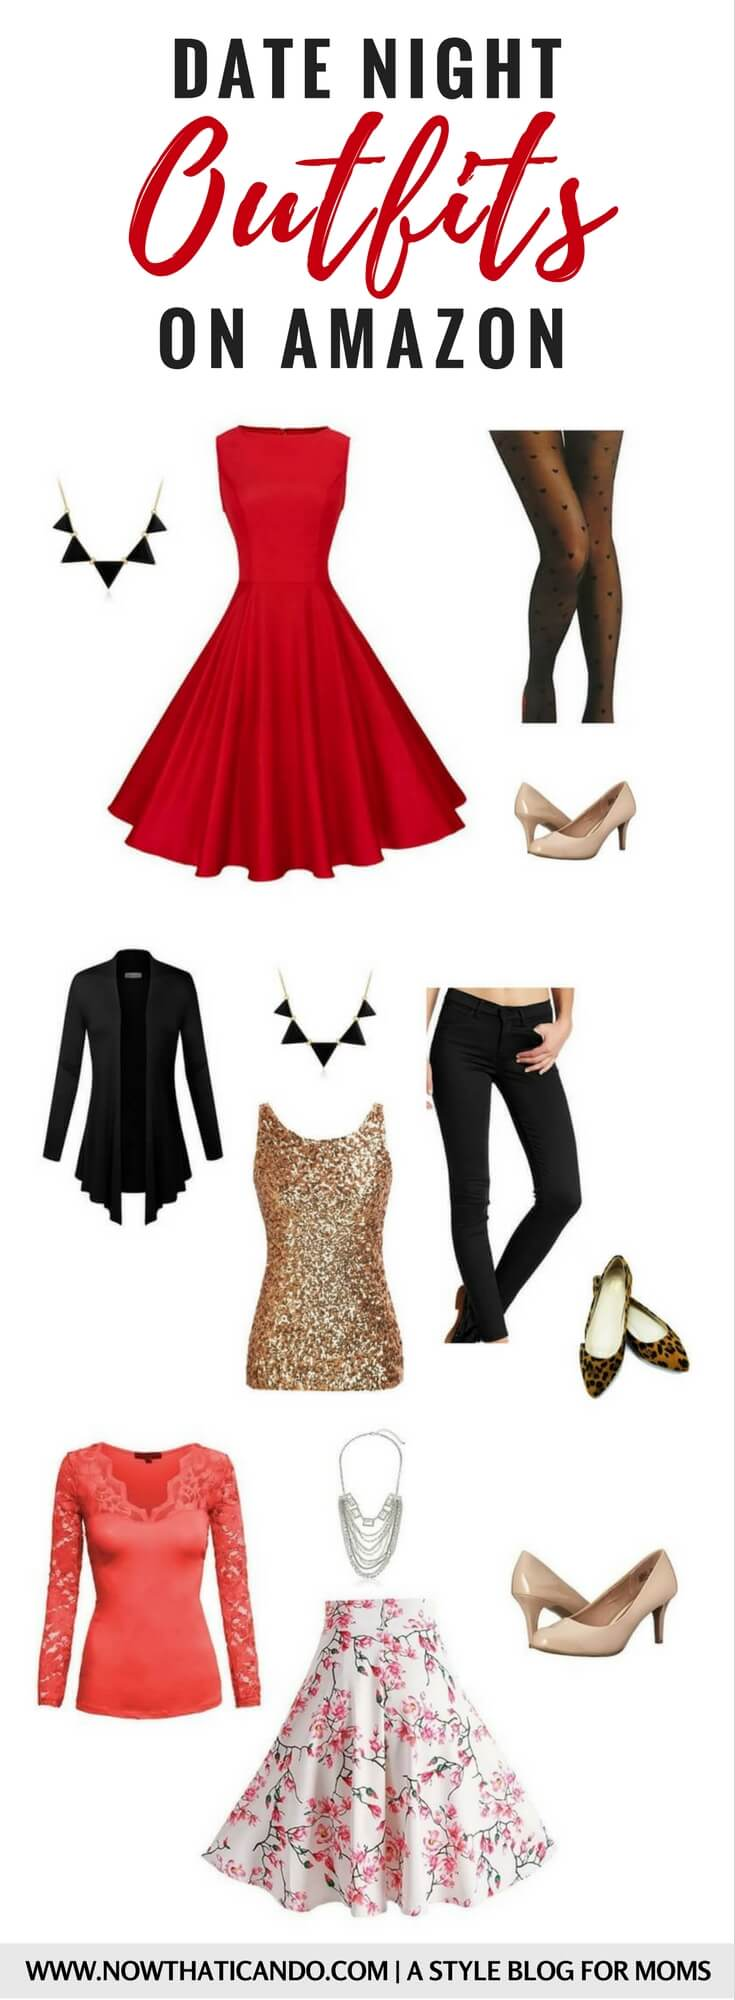 Love the gorgeous but easy ideas for what to wear on date night with my spouse! Moms everywhere, this will pull you out of your mom frump!